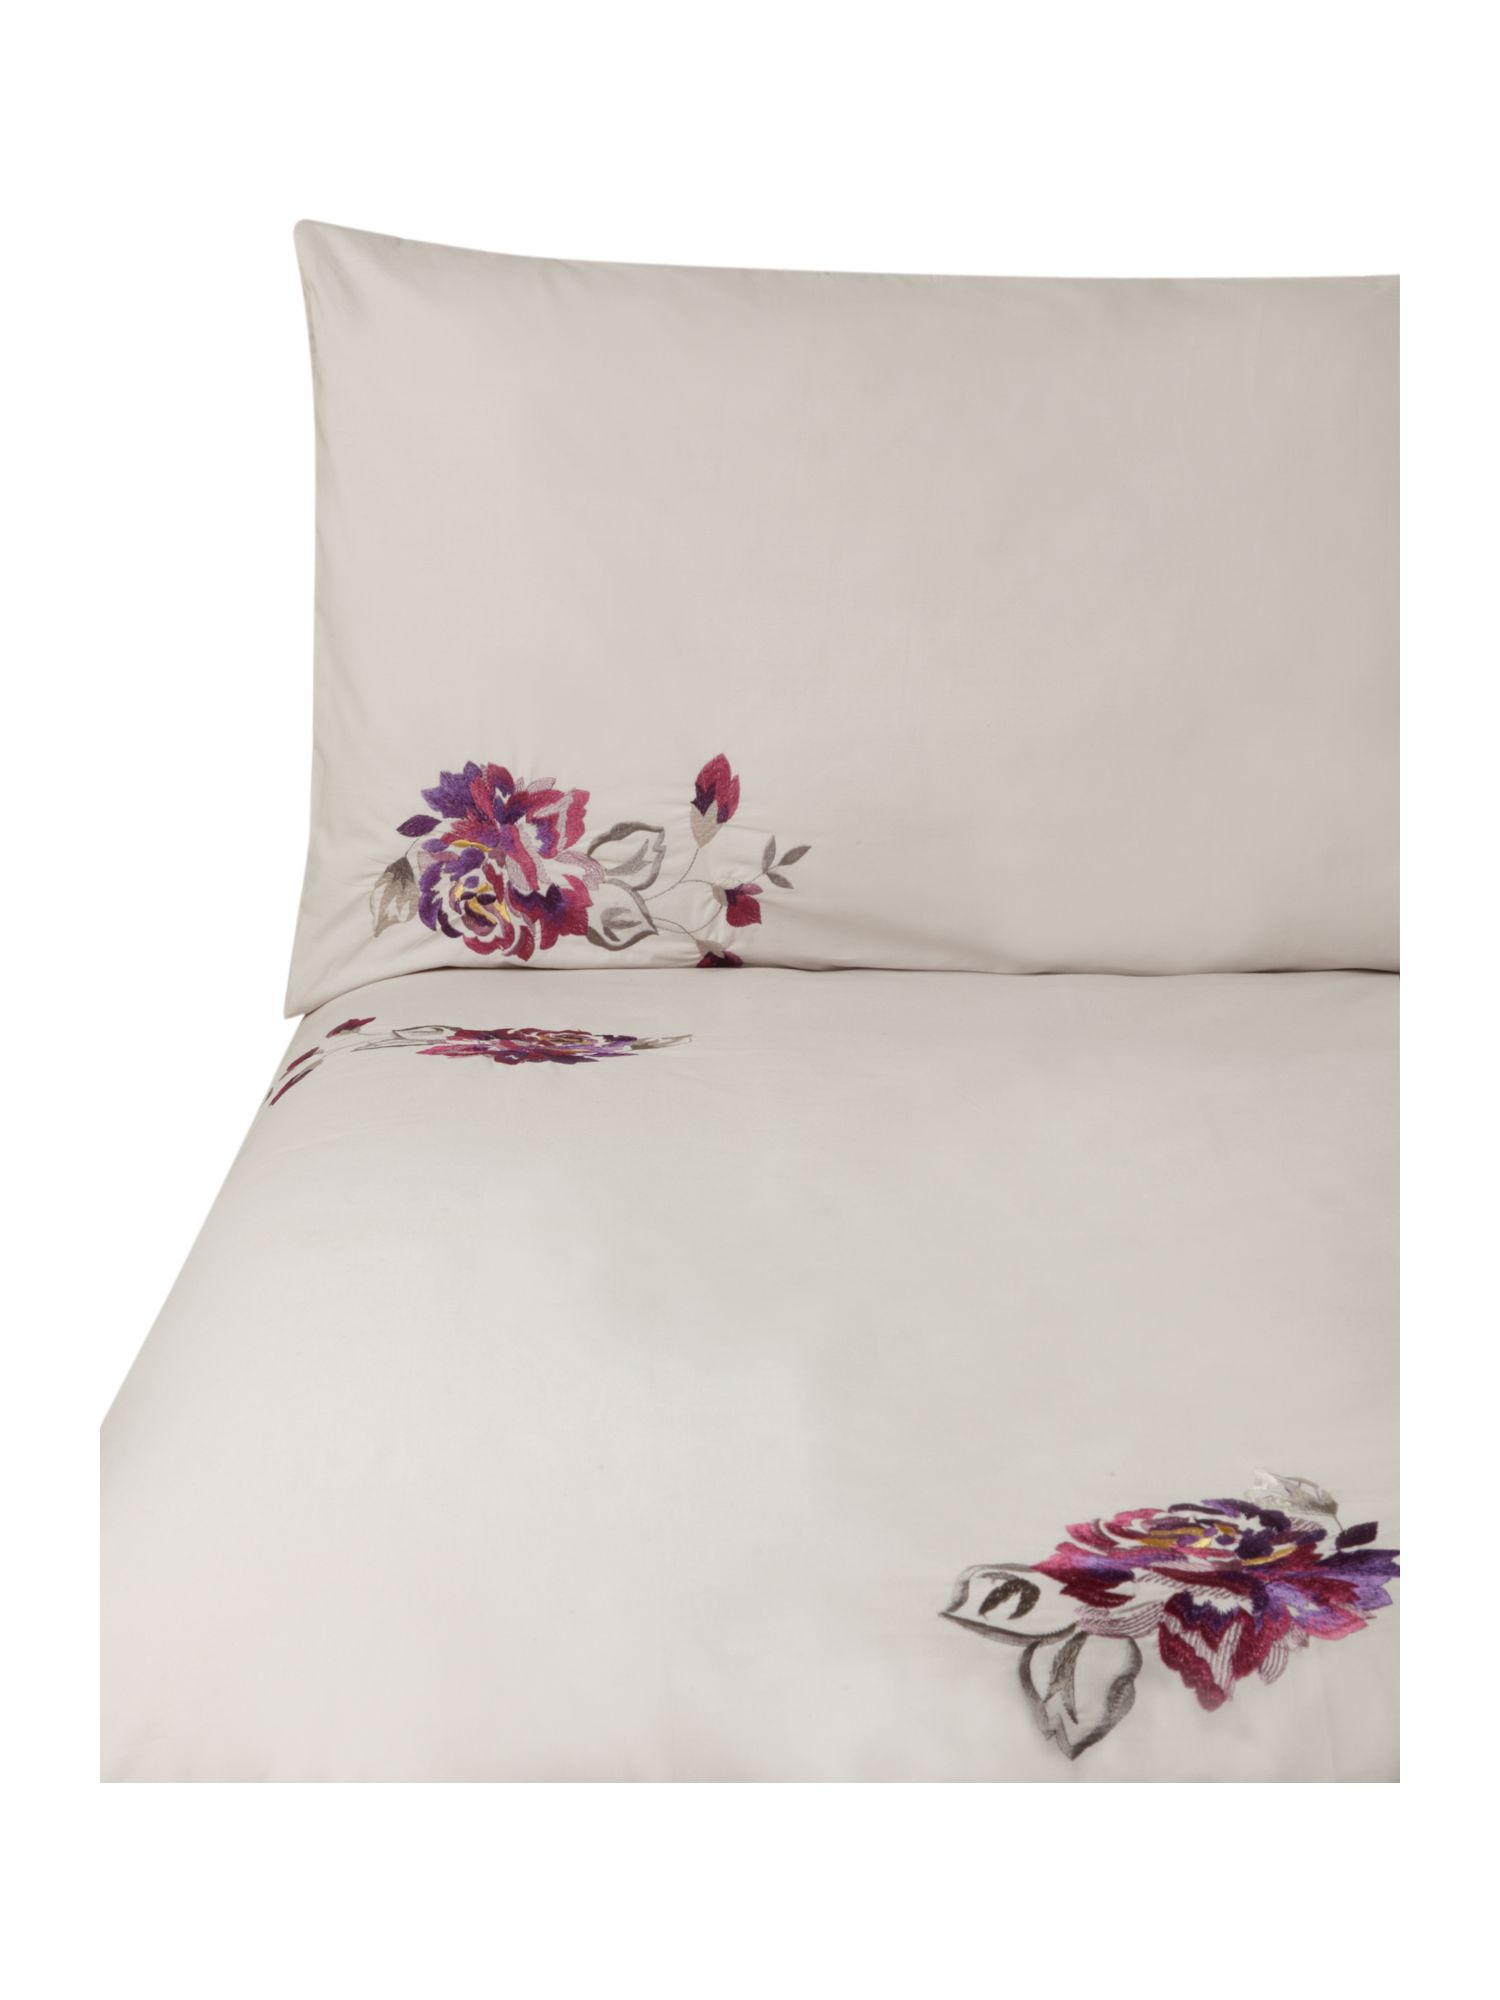 Kyoto floral bed linen in purple